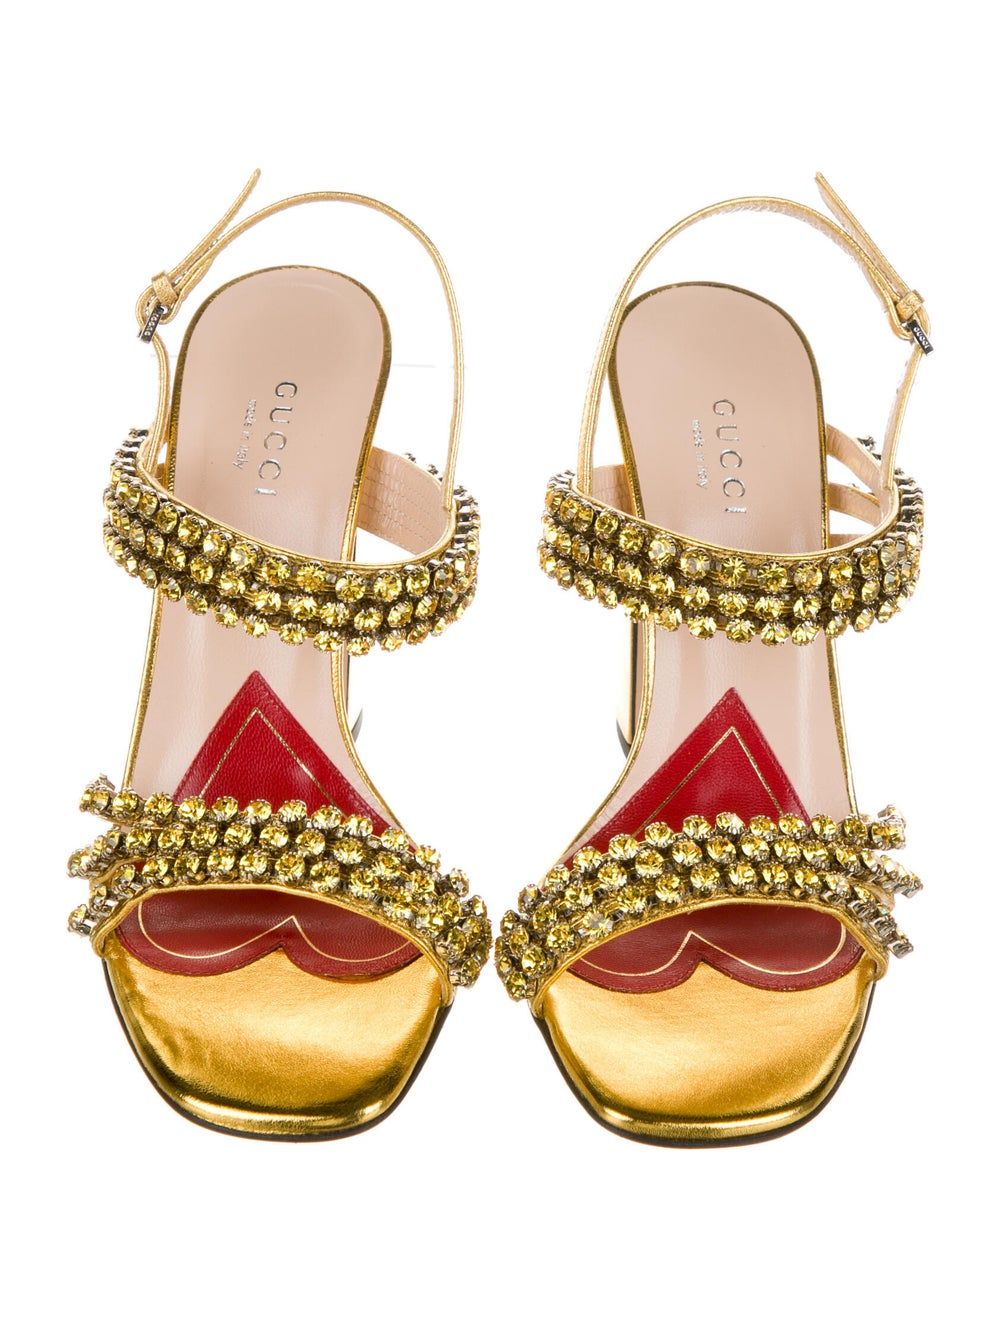 Gucci Leather Crystal Embellishments Sandals Gold - image 3